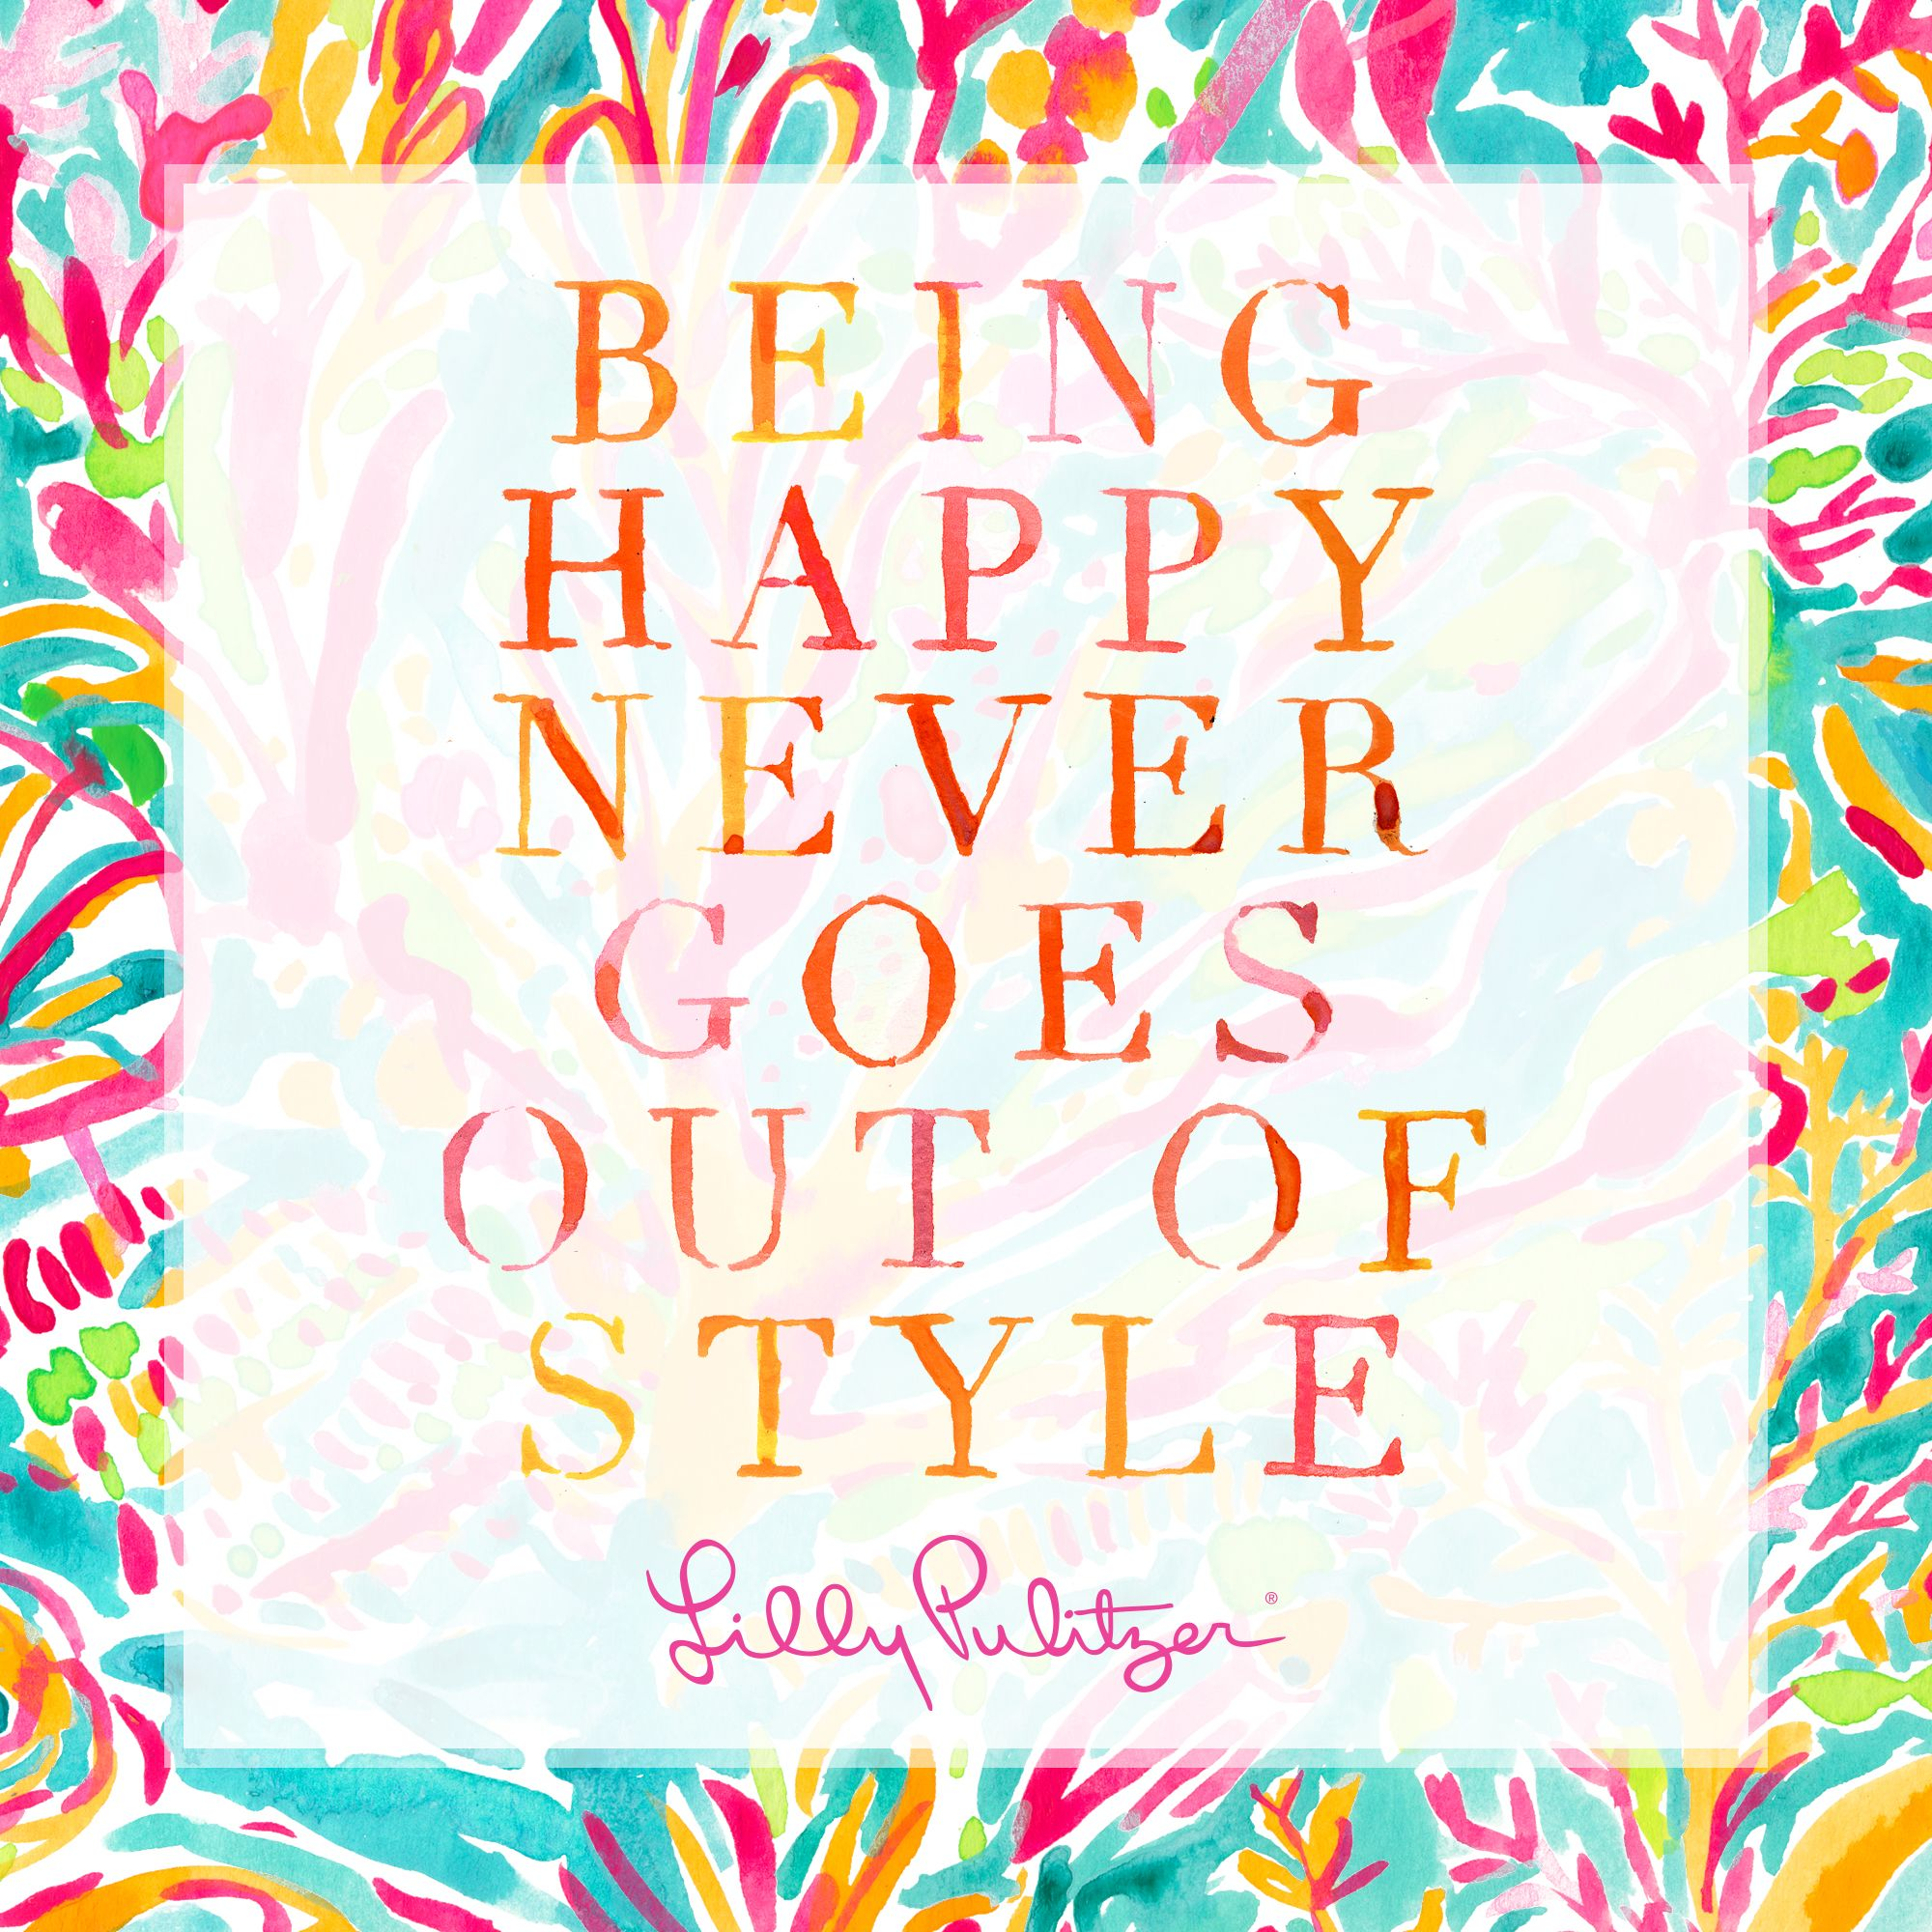 Lilly Pulitzer Wallpaper Fall 8 Of The Best Lilly Pulitzer Quotes Of All Time